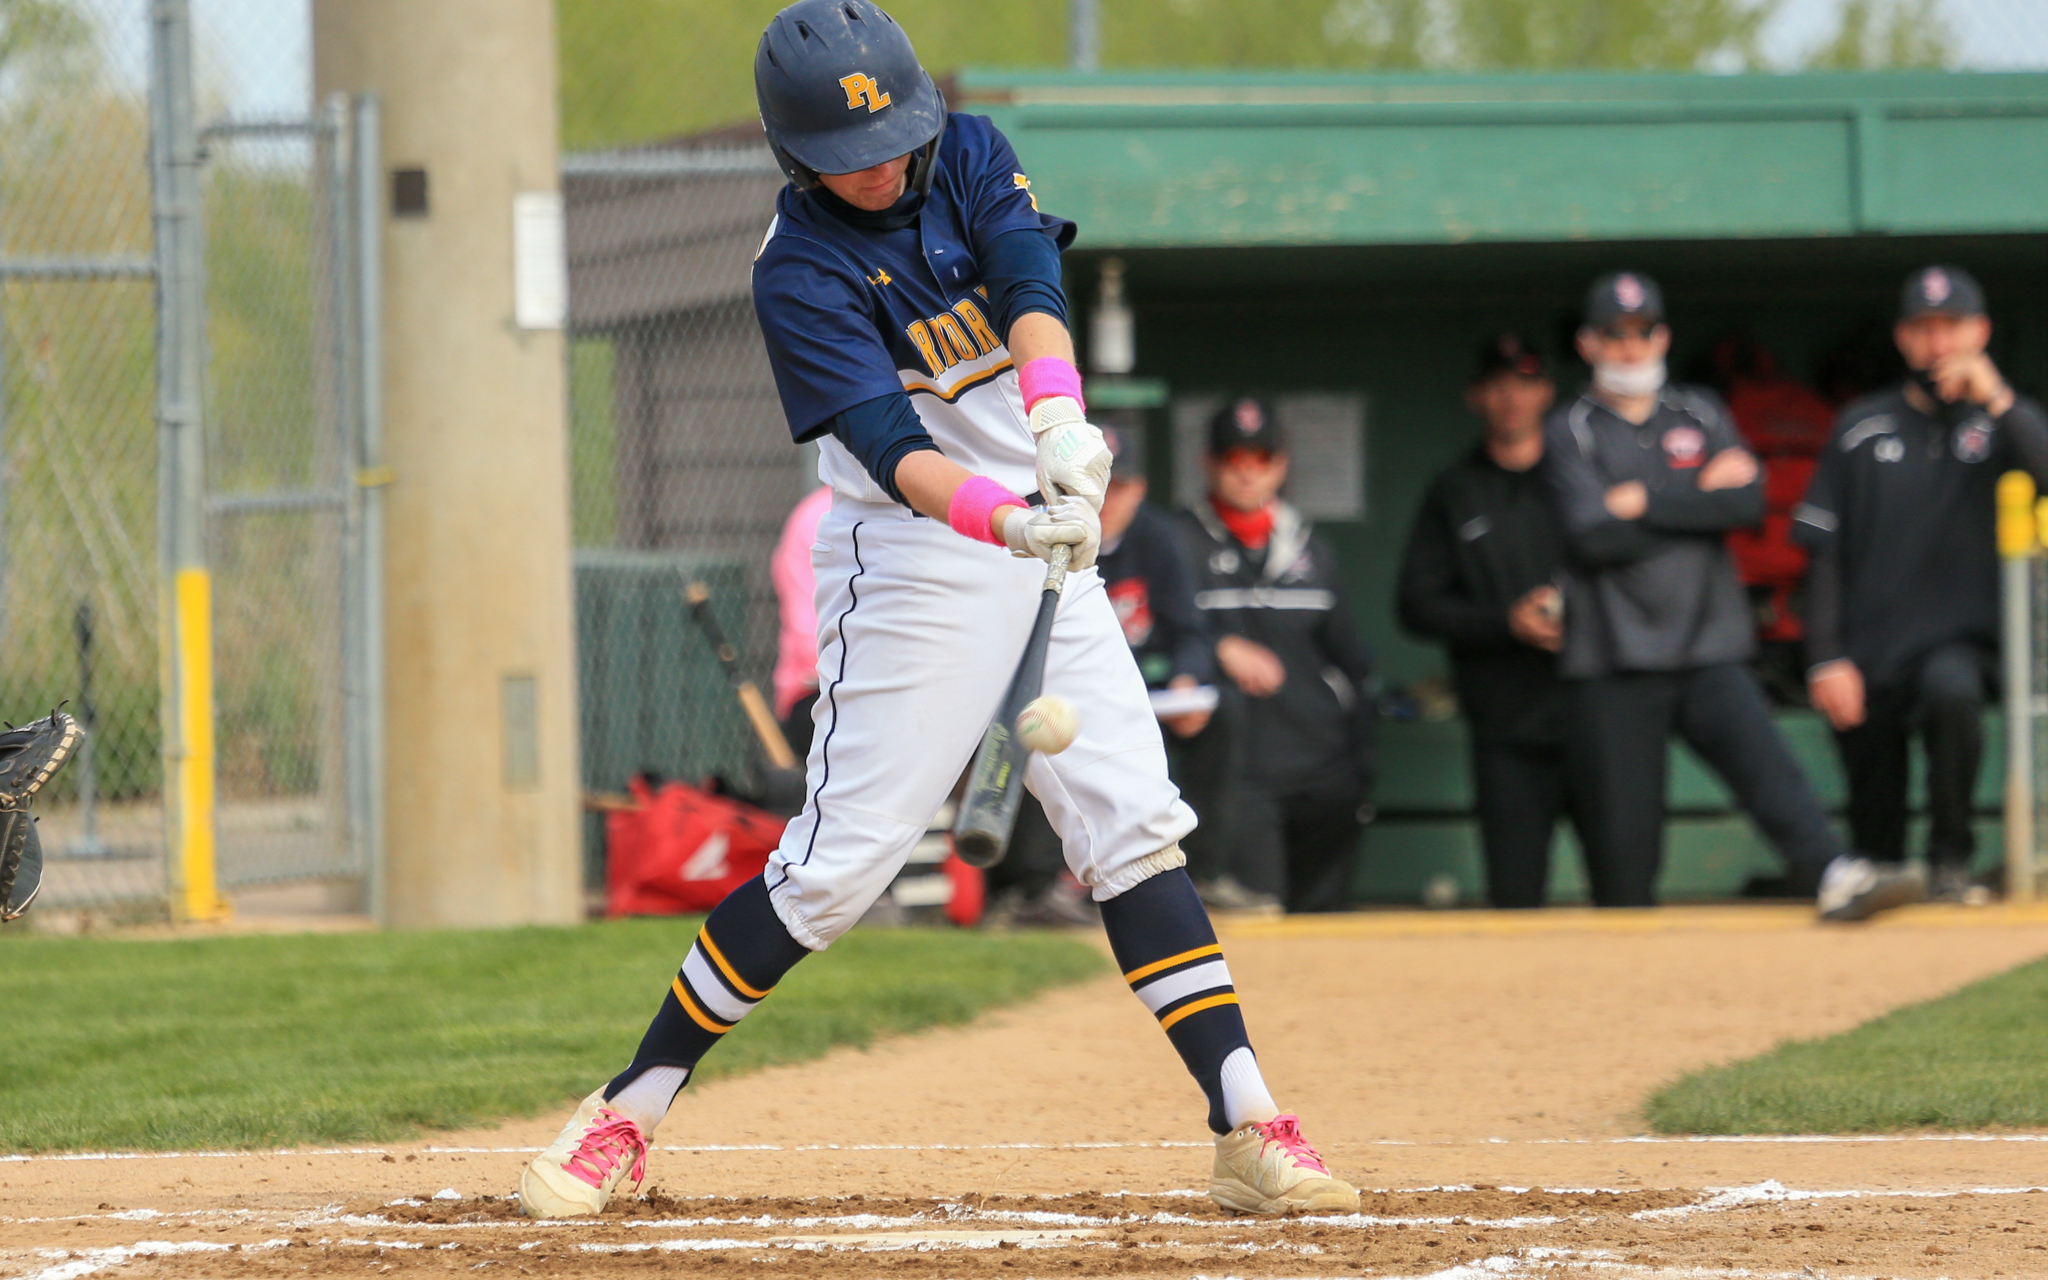 Prior Lake's Harry Fleek hits a two-run double in the bottom of the first inning against Belle Plaine Saturday. The Lakers defeated the Tigers 9-2 at Memorial Park in Prior Lake. Photo by Jeff Lawler, SportsEngine